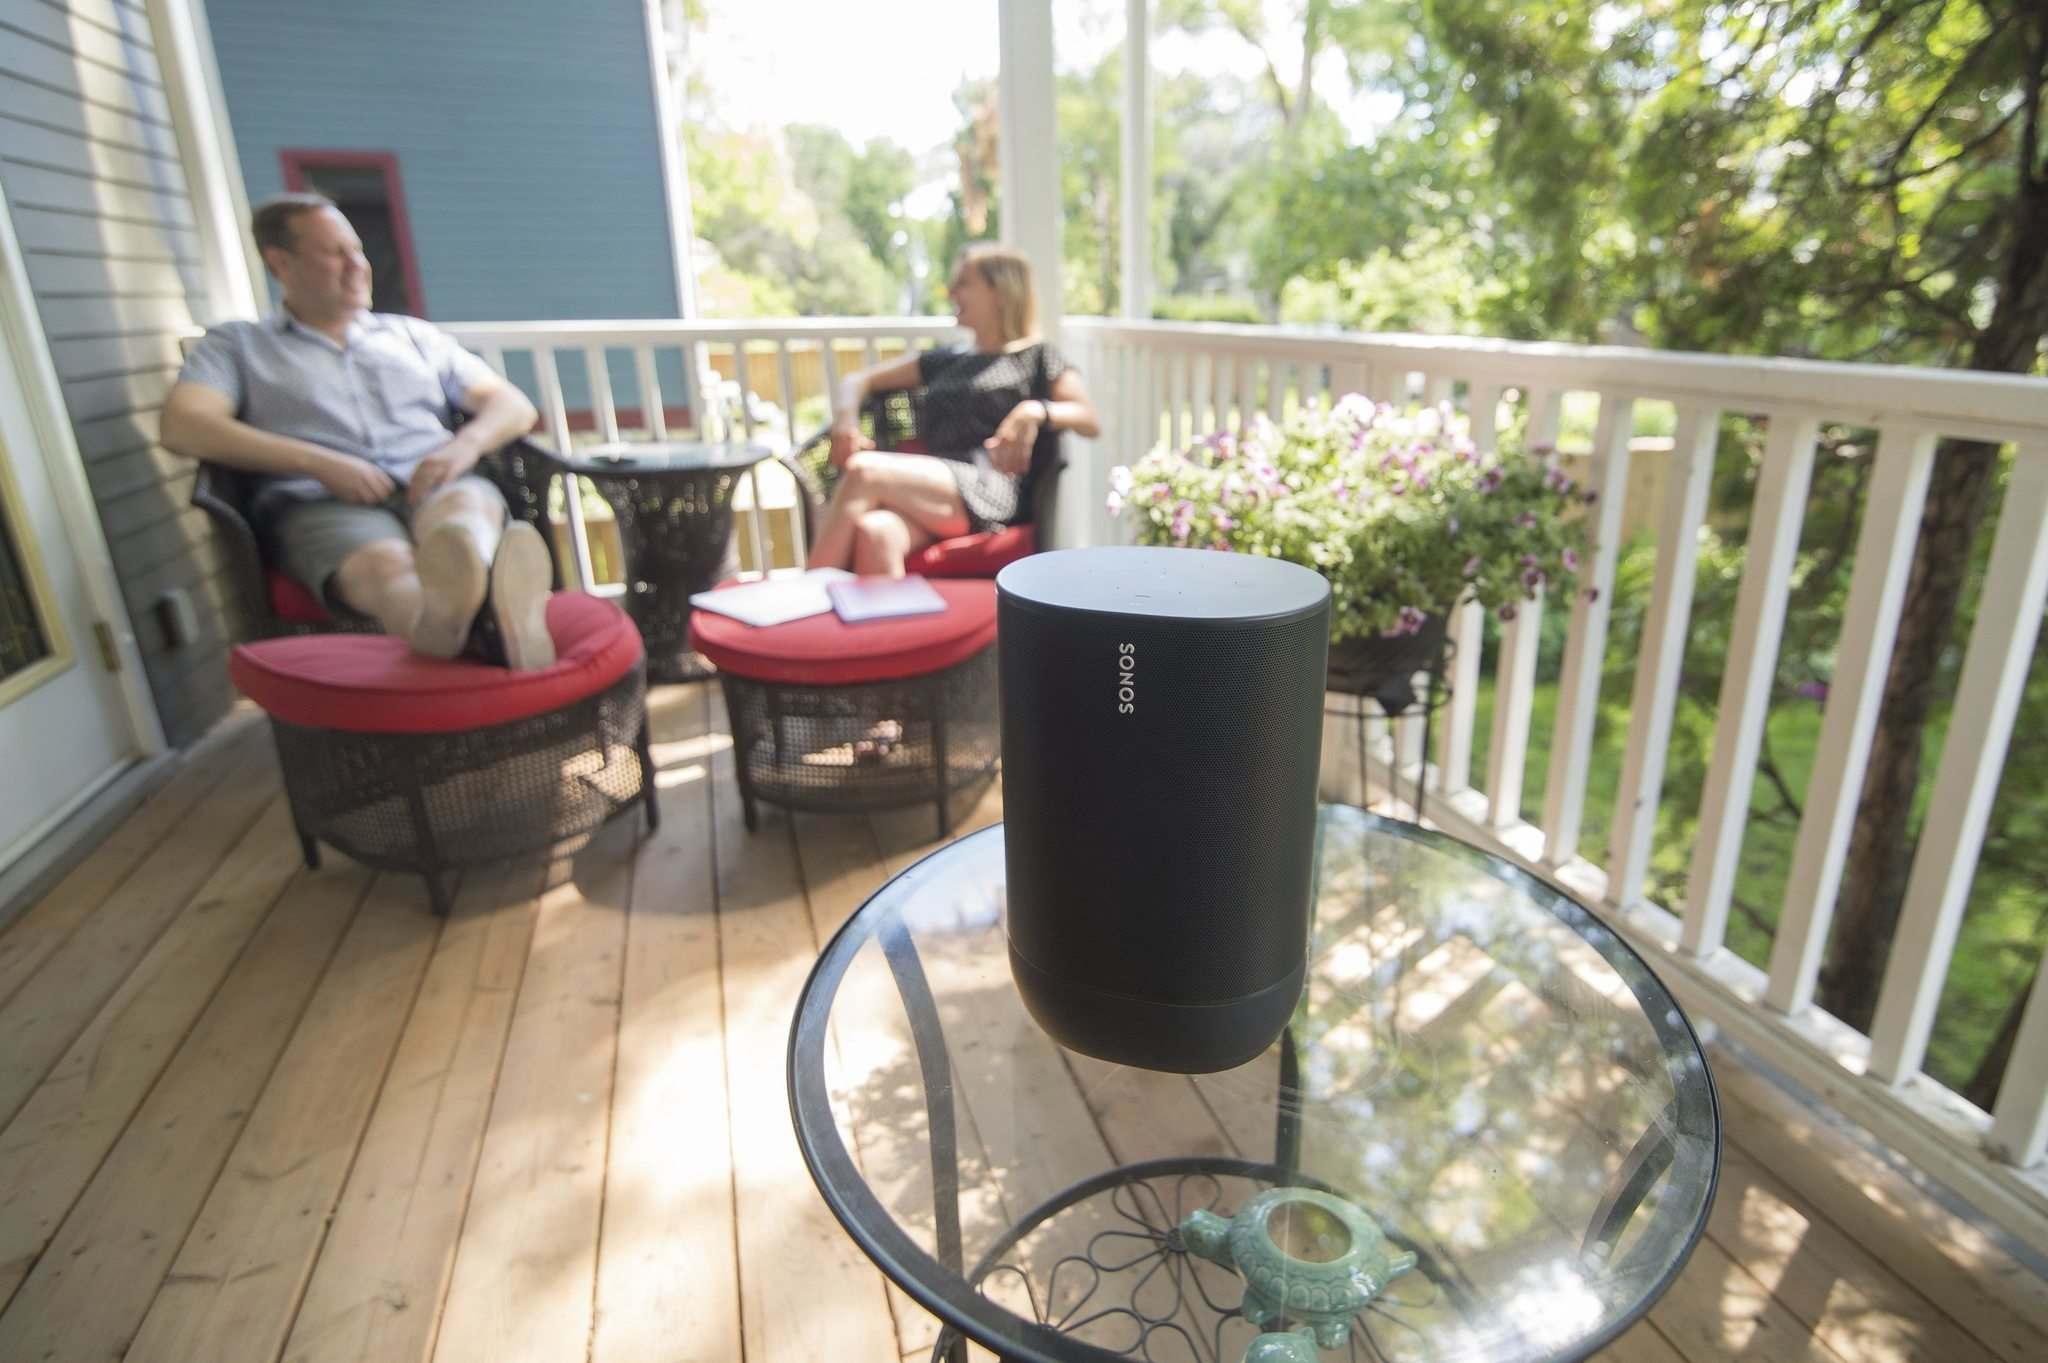 Lynne Skromeda, executive director of the Winnipeg Folk Festival, and her partner, Jason Smith, enjoy some music on the porch of their home. (Mike Sudoma / Winnipeg Free Press)